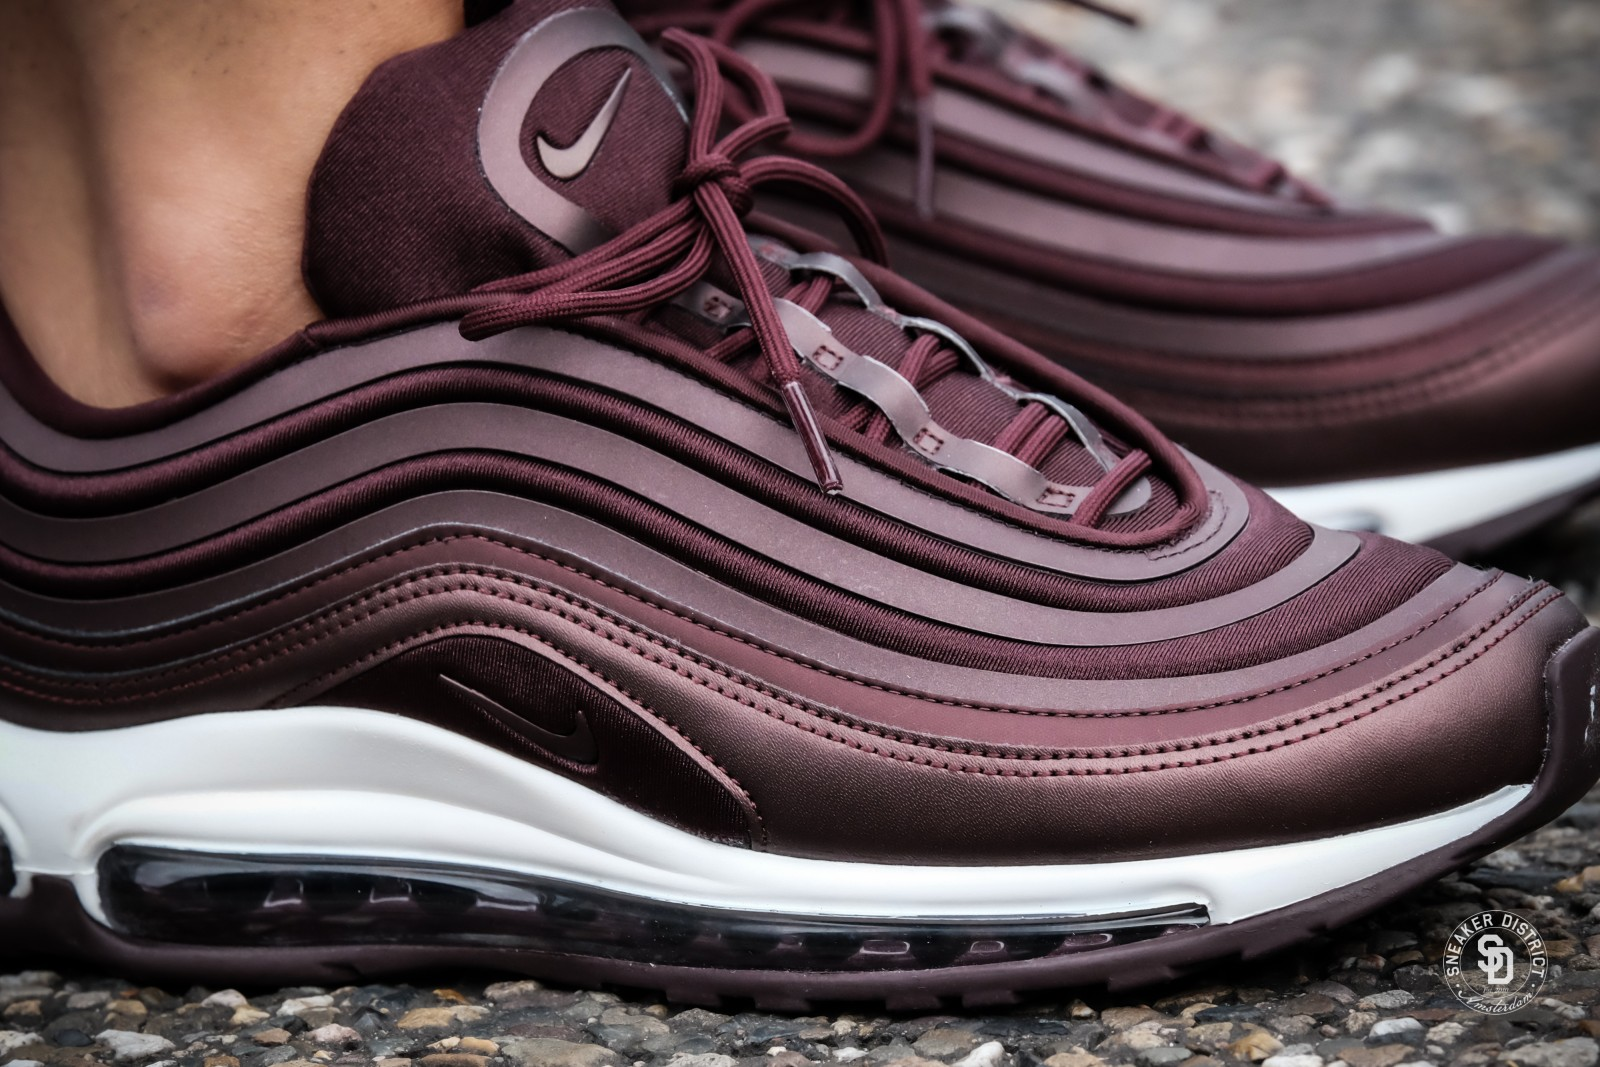 Womens Nike Air Max 97 Shoes Sale Online at Cheap UK Prices